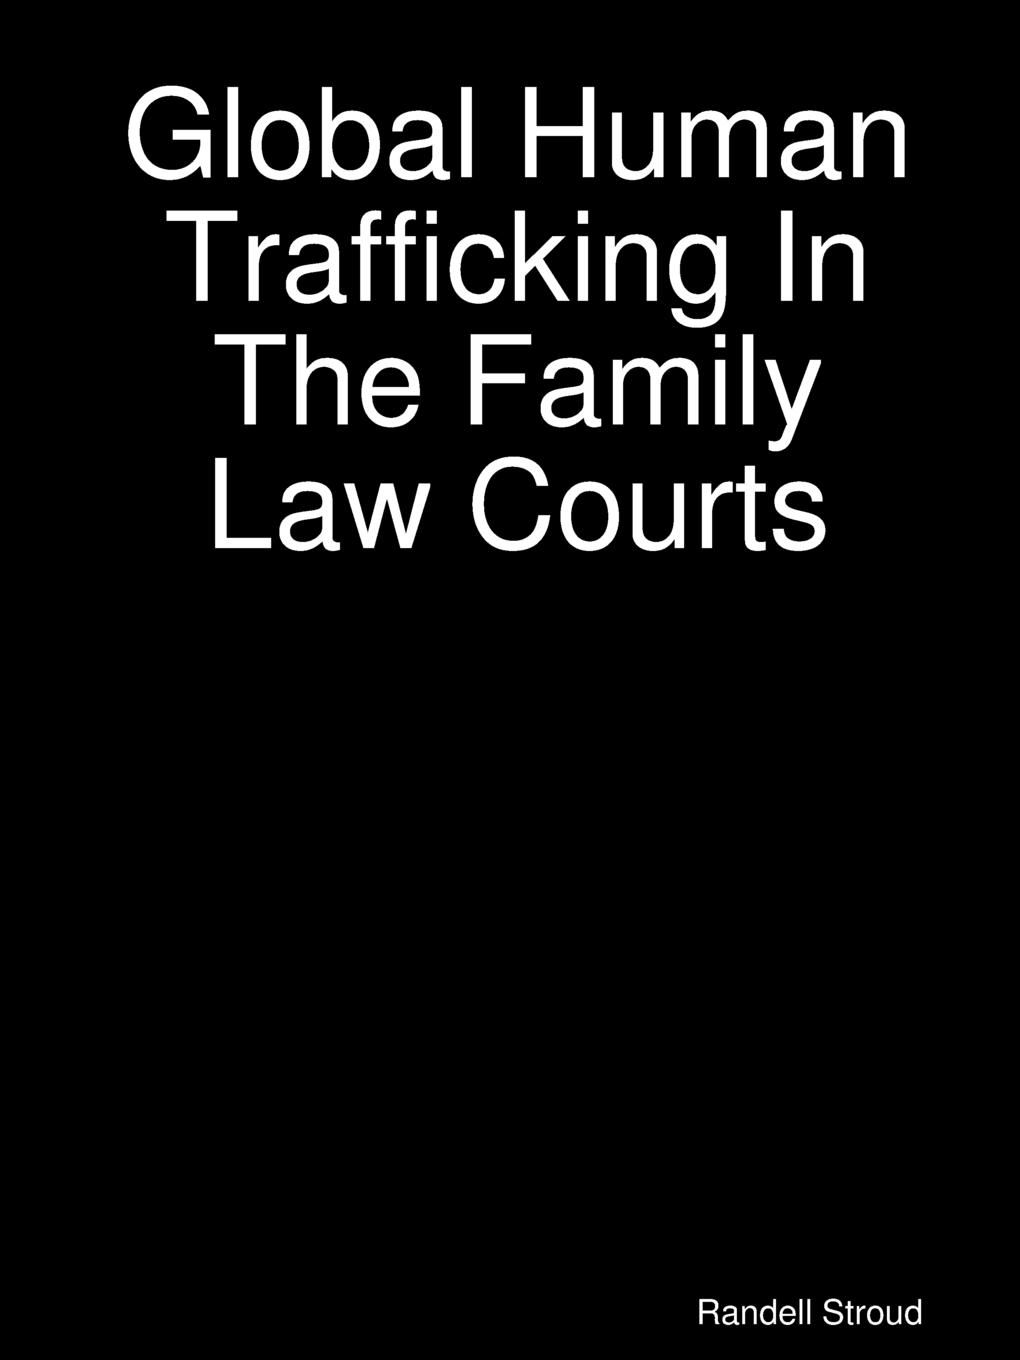 Randell Stroud Global Human Trafficking In The Family Law Courts